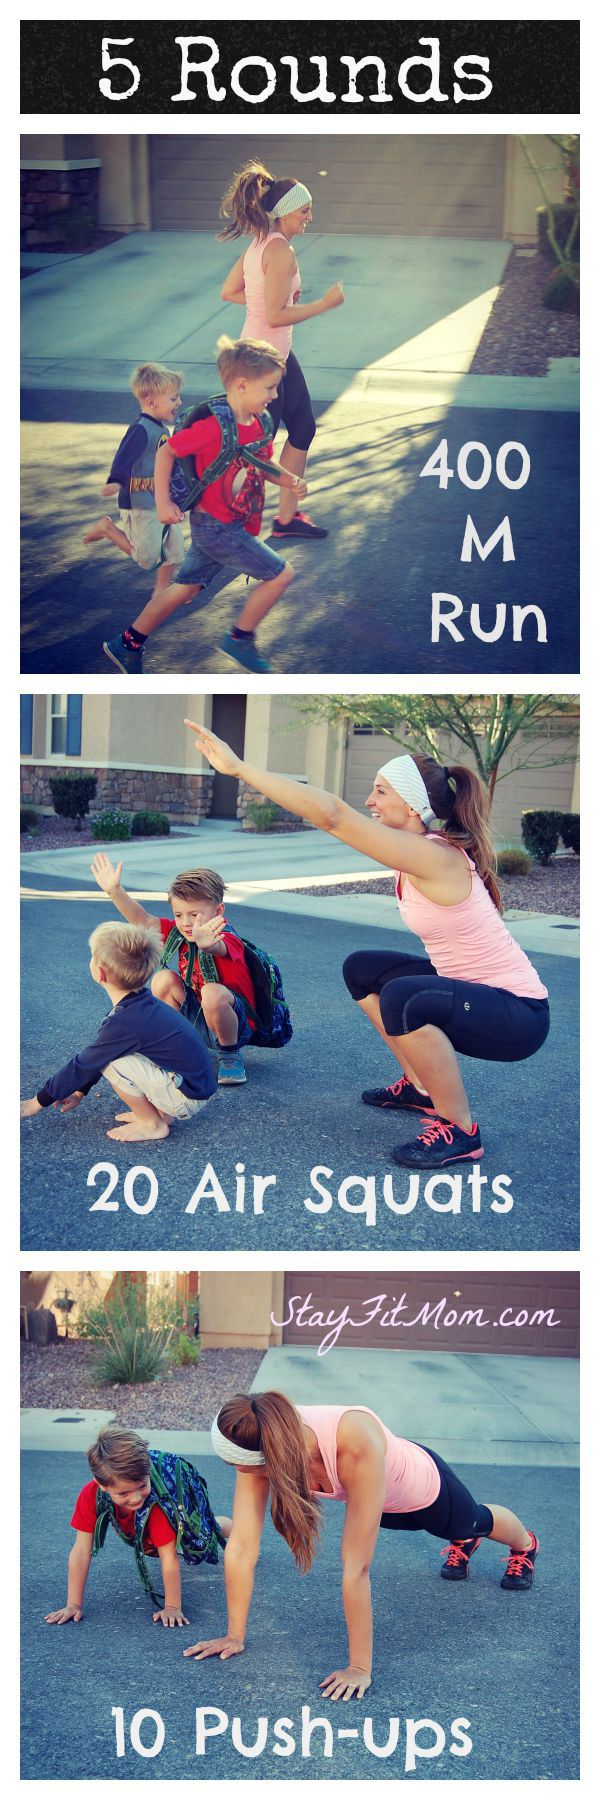 At home CrossFit Workouts you can do with your kids around from StayFitMom.com! #applybeforeyoudry #ad @target